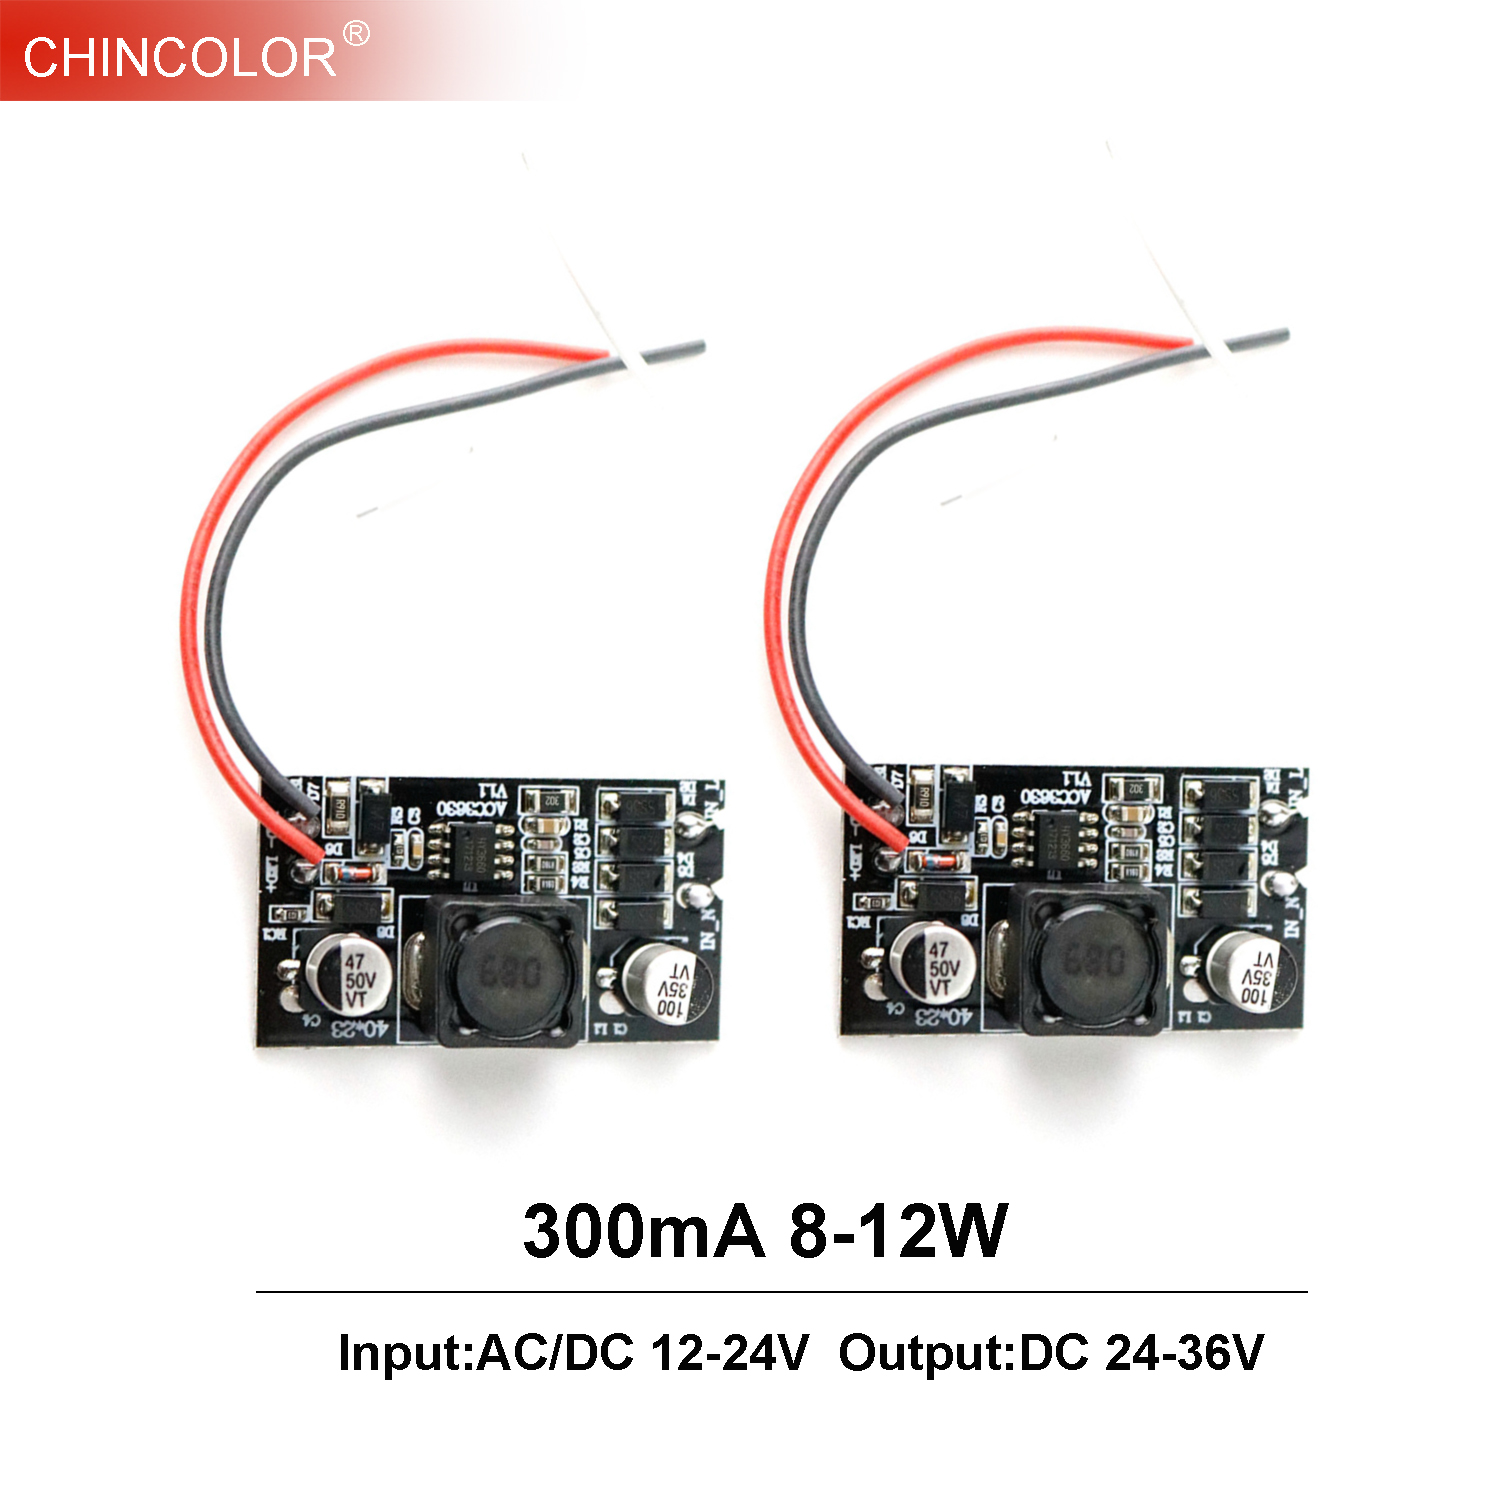 DC 24V~36V <font><b>Led</b></font> <font><b>Driver</b></font> Power Supply <font><b>LED</b></font> Built-in <font><b>Driver</b></font> 300mA (8-12)x1W 8W 9W 10W 11W <font><b>12W</b></font> AC/DC 12-24V DIY <font><b>LED</b></font> Light Lamp Bulb IL image